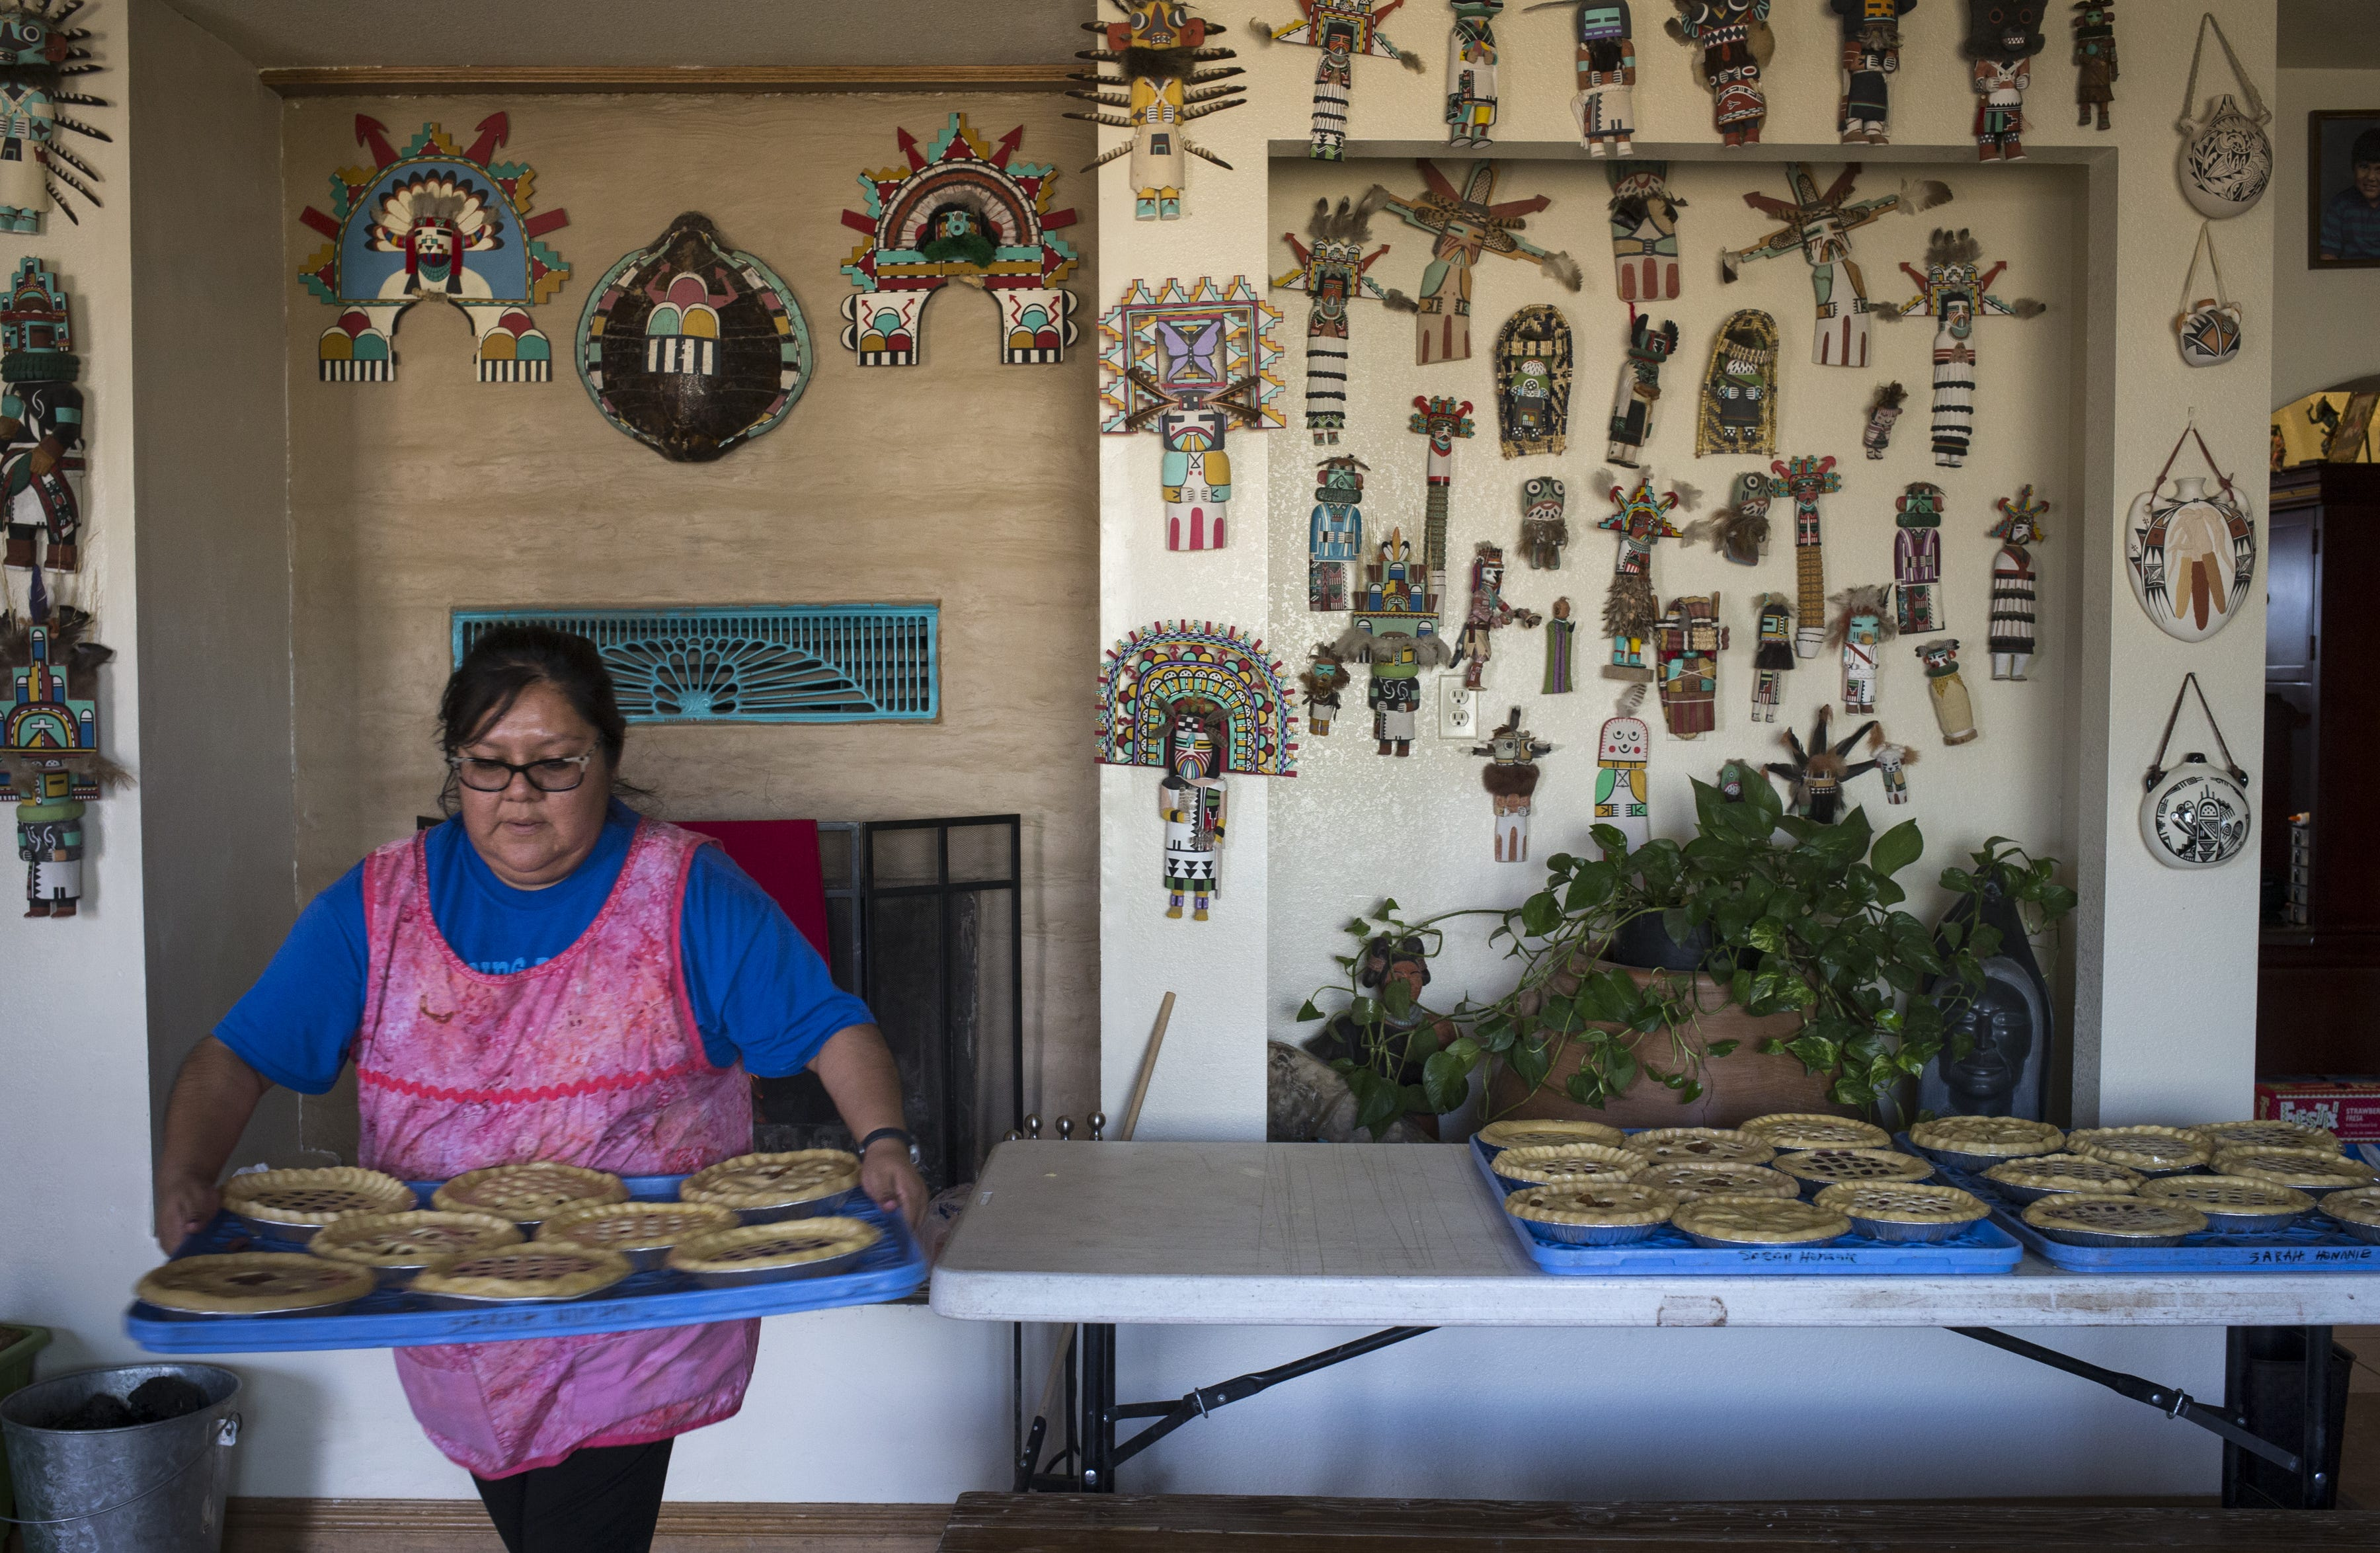 Tiah Honanie, the bride's sister, carries a tray of pies to be baked in the outdoor oven on March 21, 2019, in Hotevilla, Arizona.